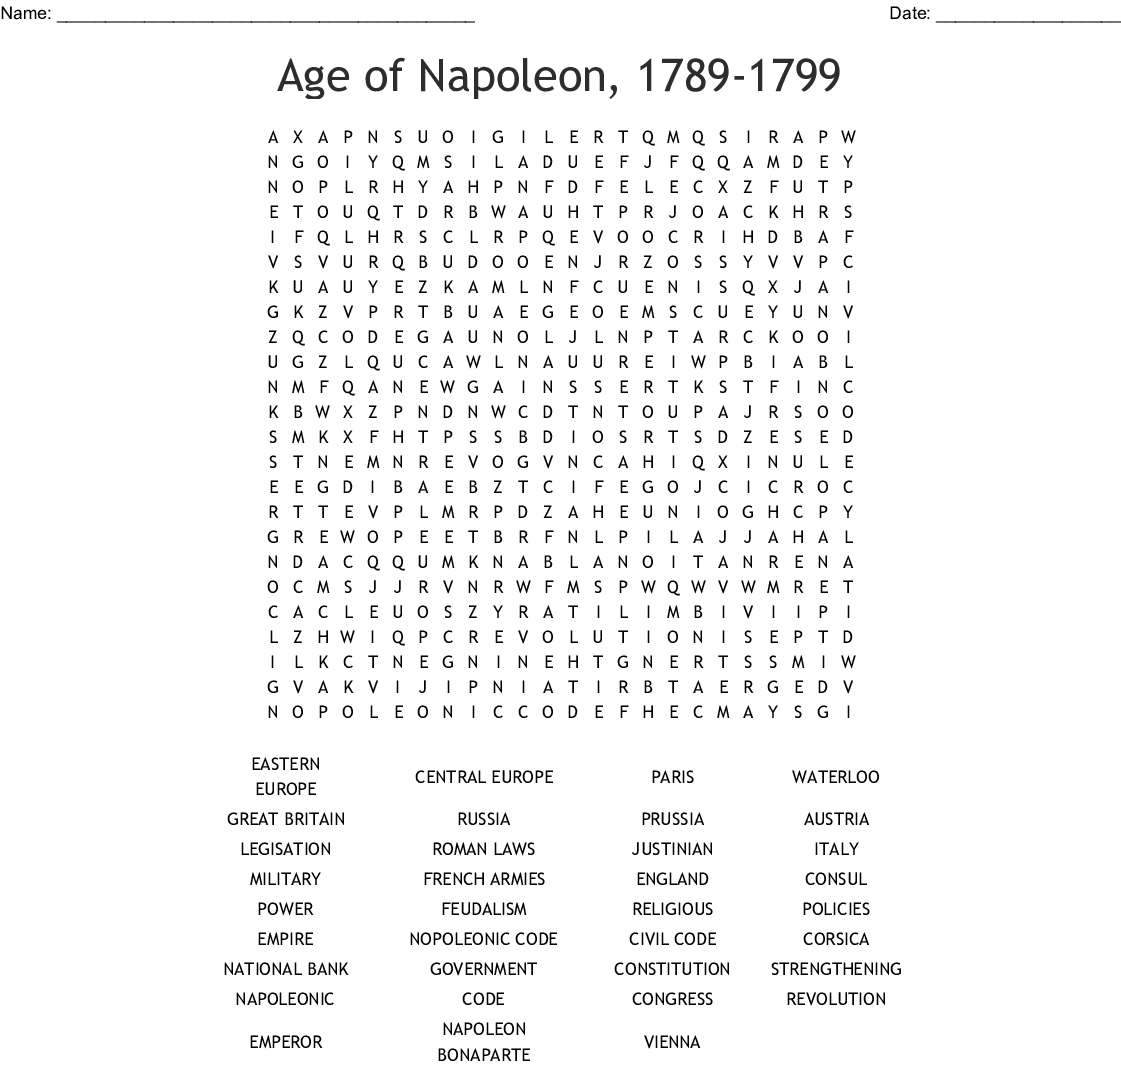 Age of Napoleon, 1789-1799 Word Search - WordMint